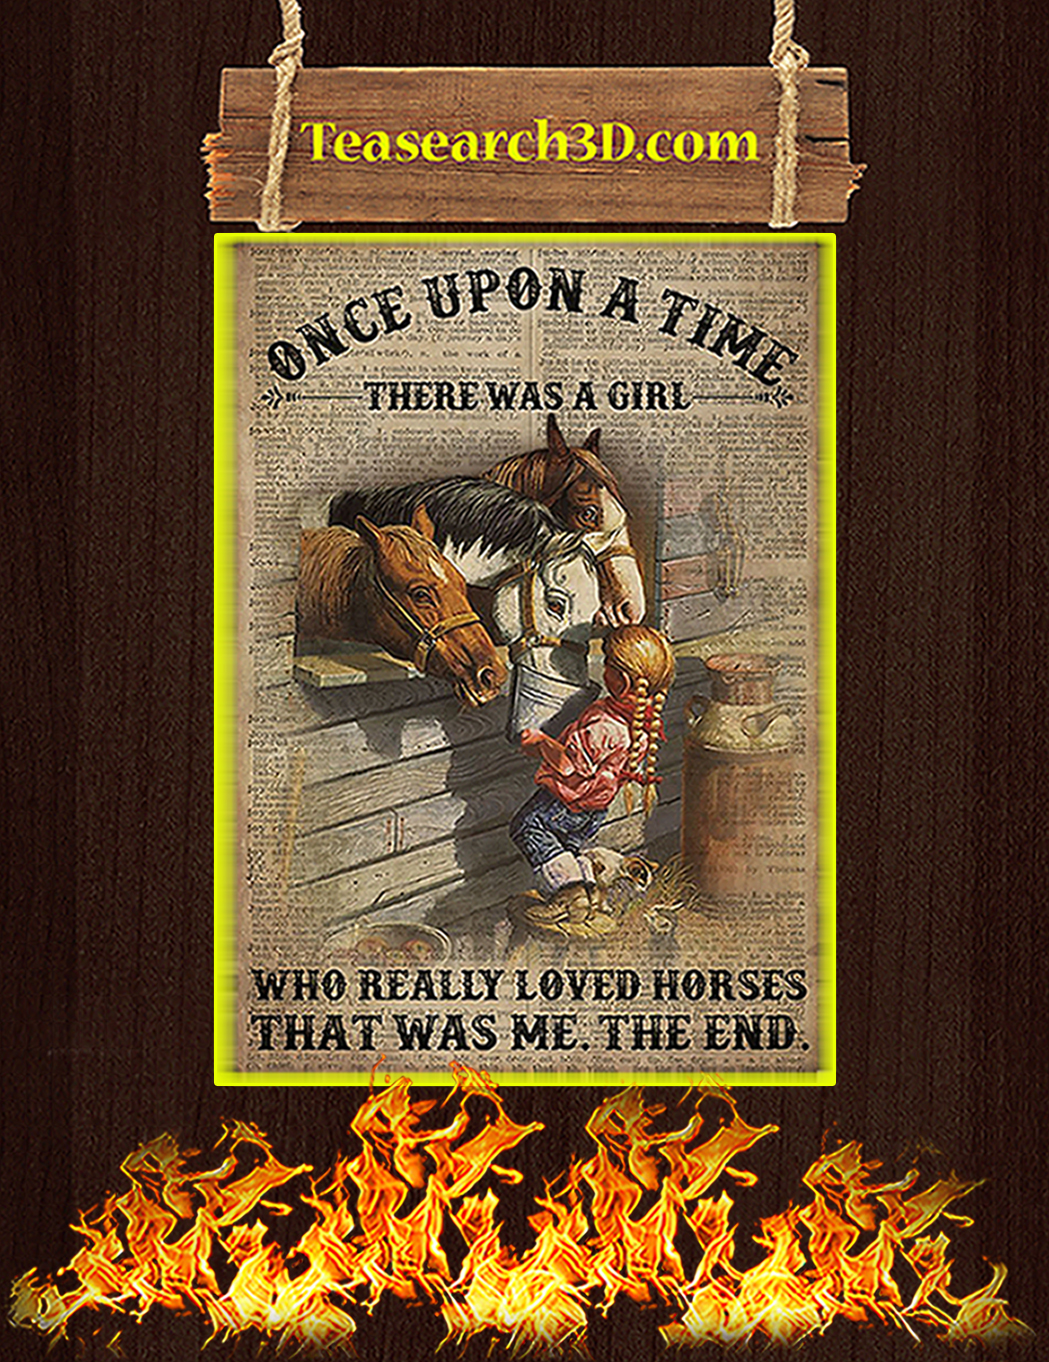 Once upon a time there was a girl who really loved horses poster A1